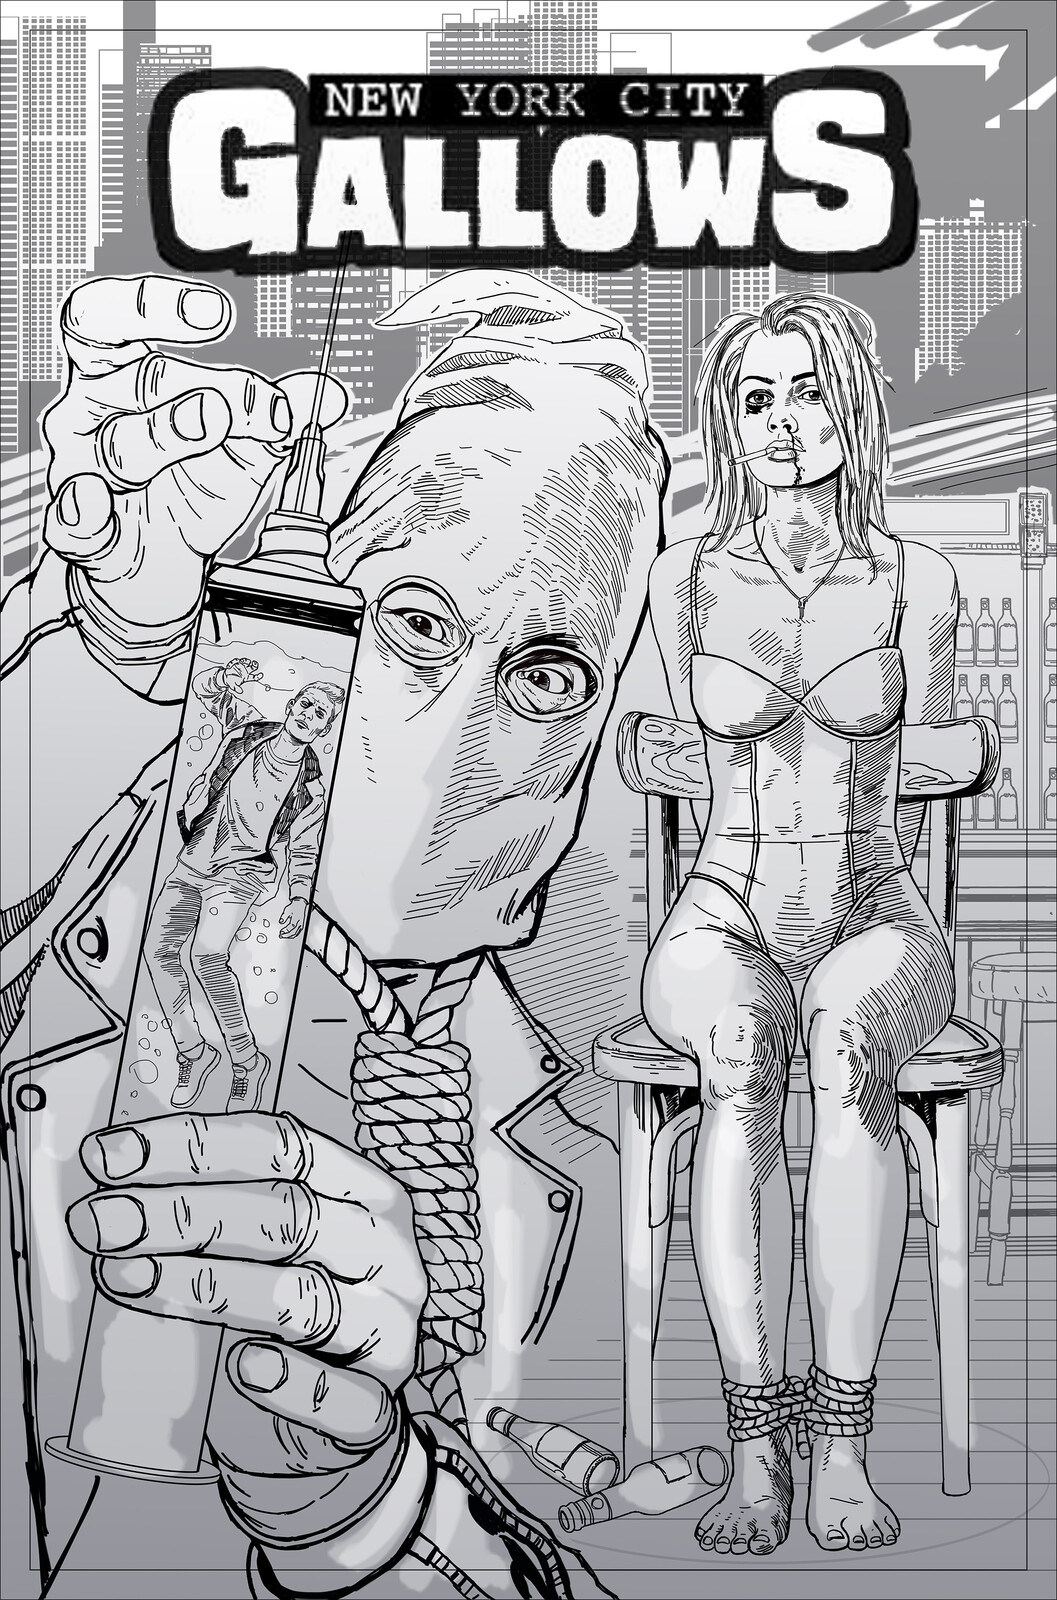 New York City Gallows Issue 2 Cover Art Sketch